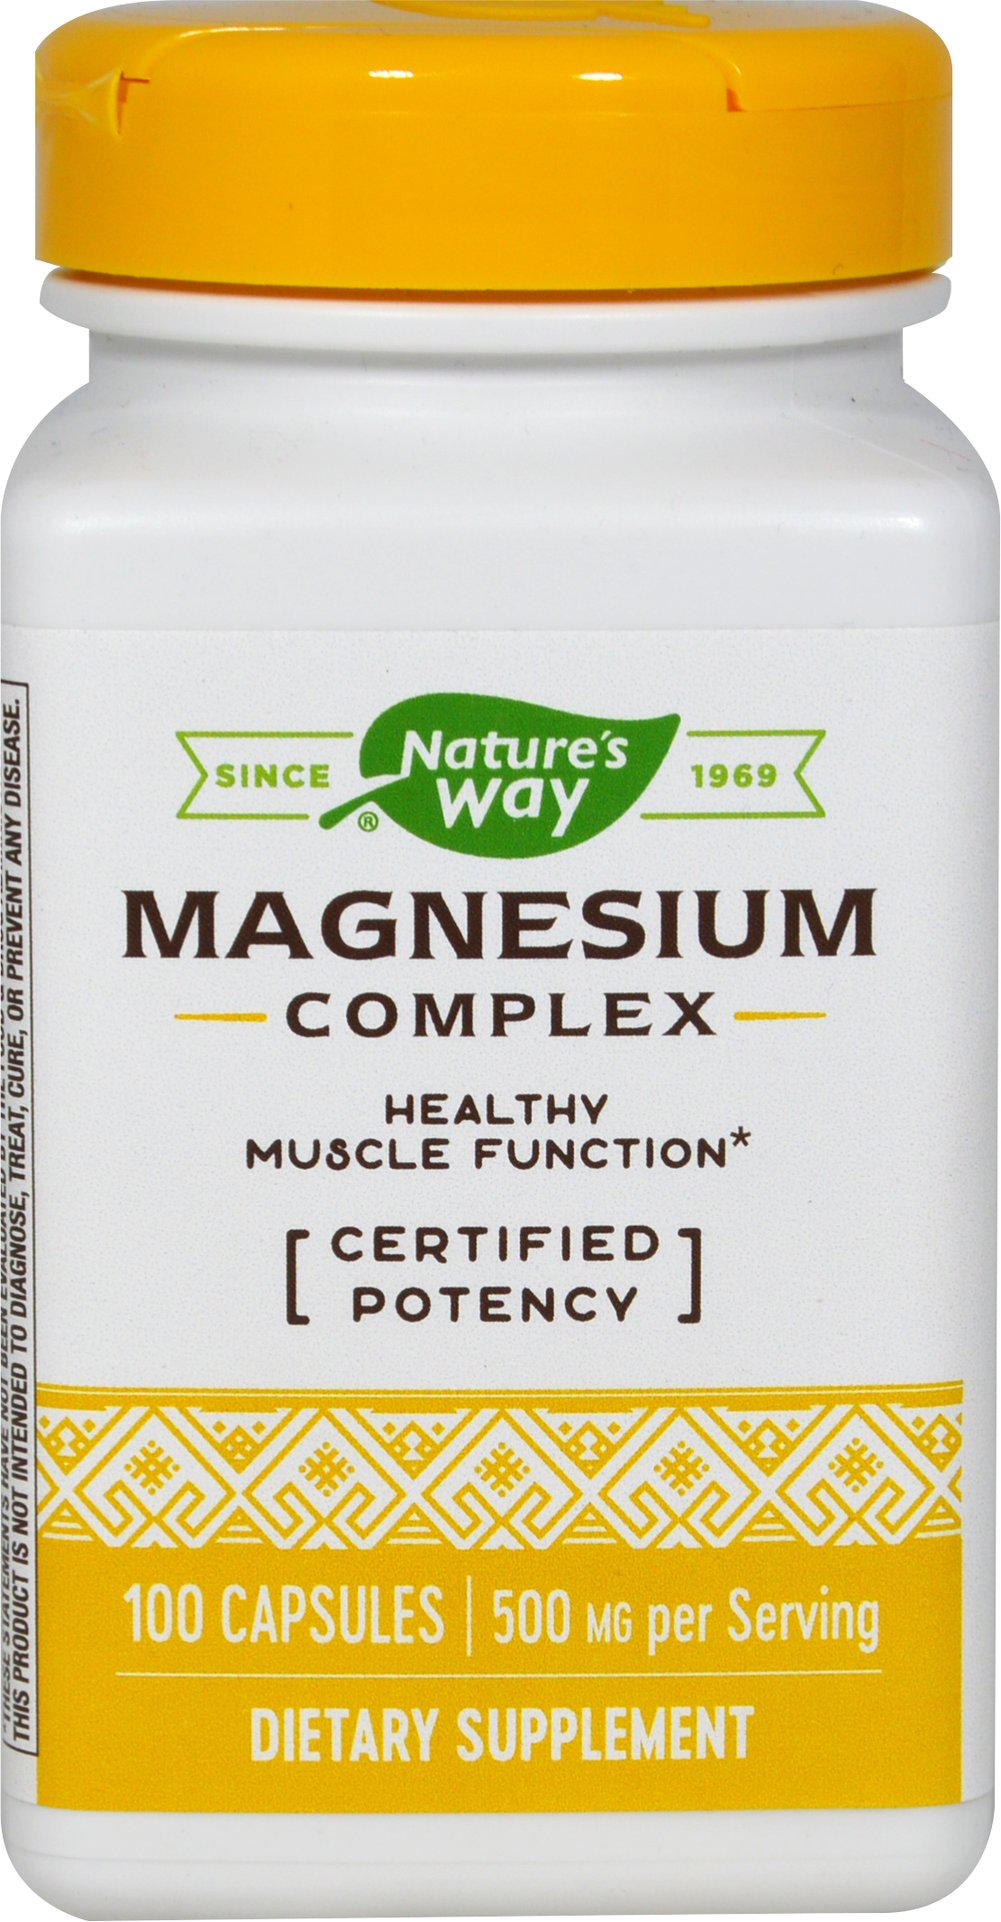 Magnesium Complex  <p><b>From the Manufacturer's Label:</b></p>  <p>Magnesium Complex is manufactured by Nature's Way.</p> 100 Capsules 250 mg $4.99